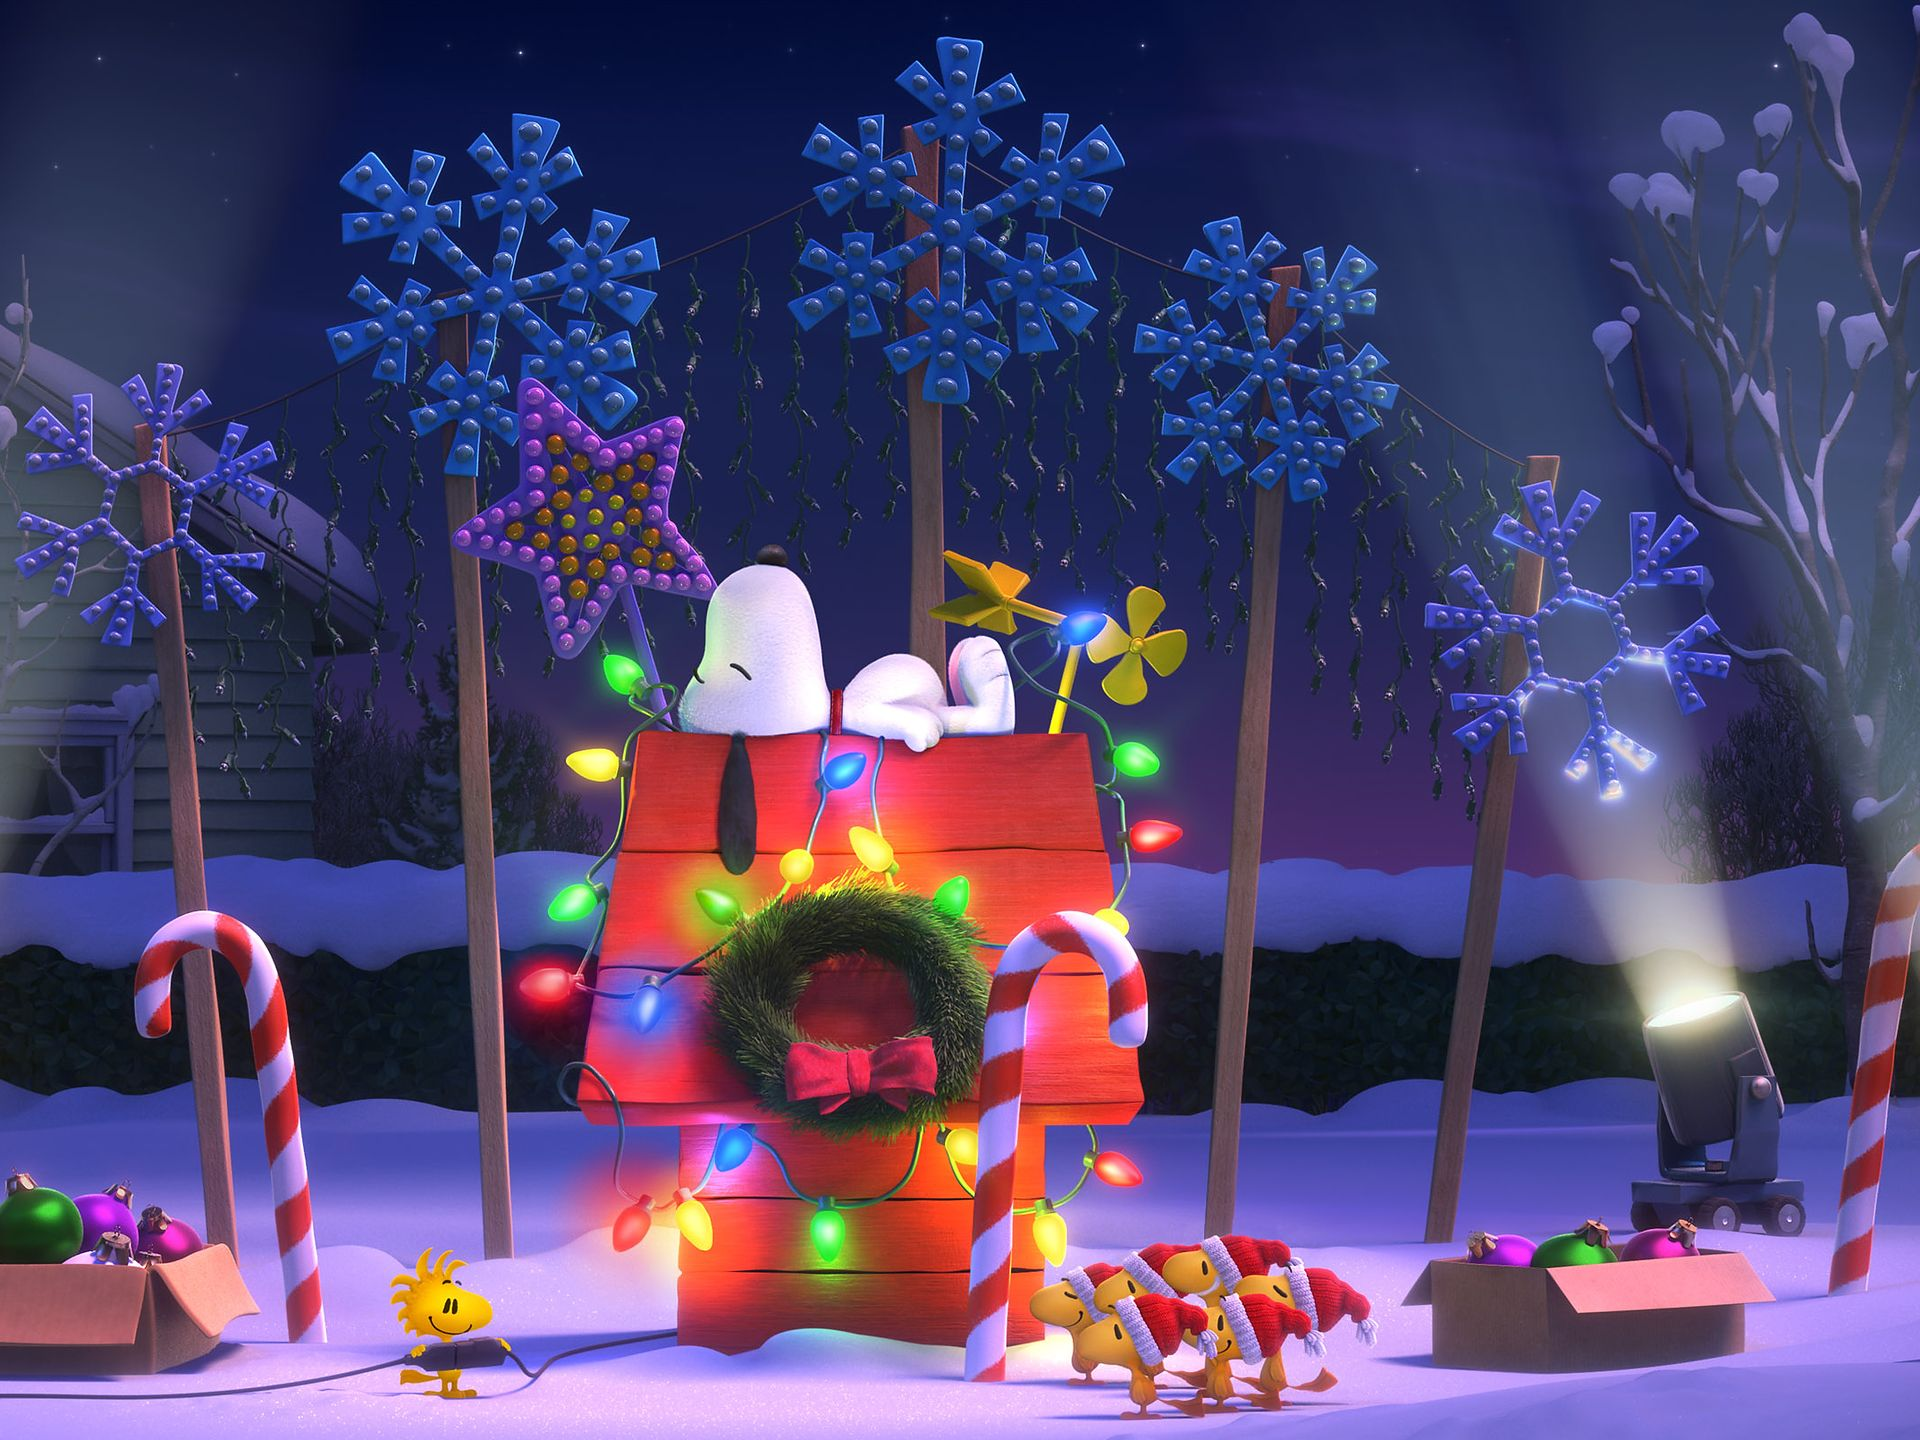 Snoopy and Charlie Brown A Peanuts Movie 5 1920x1440